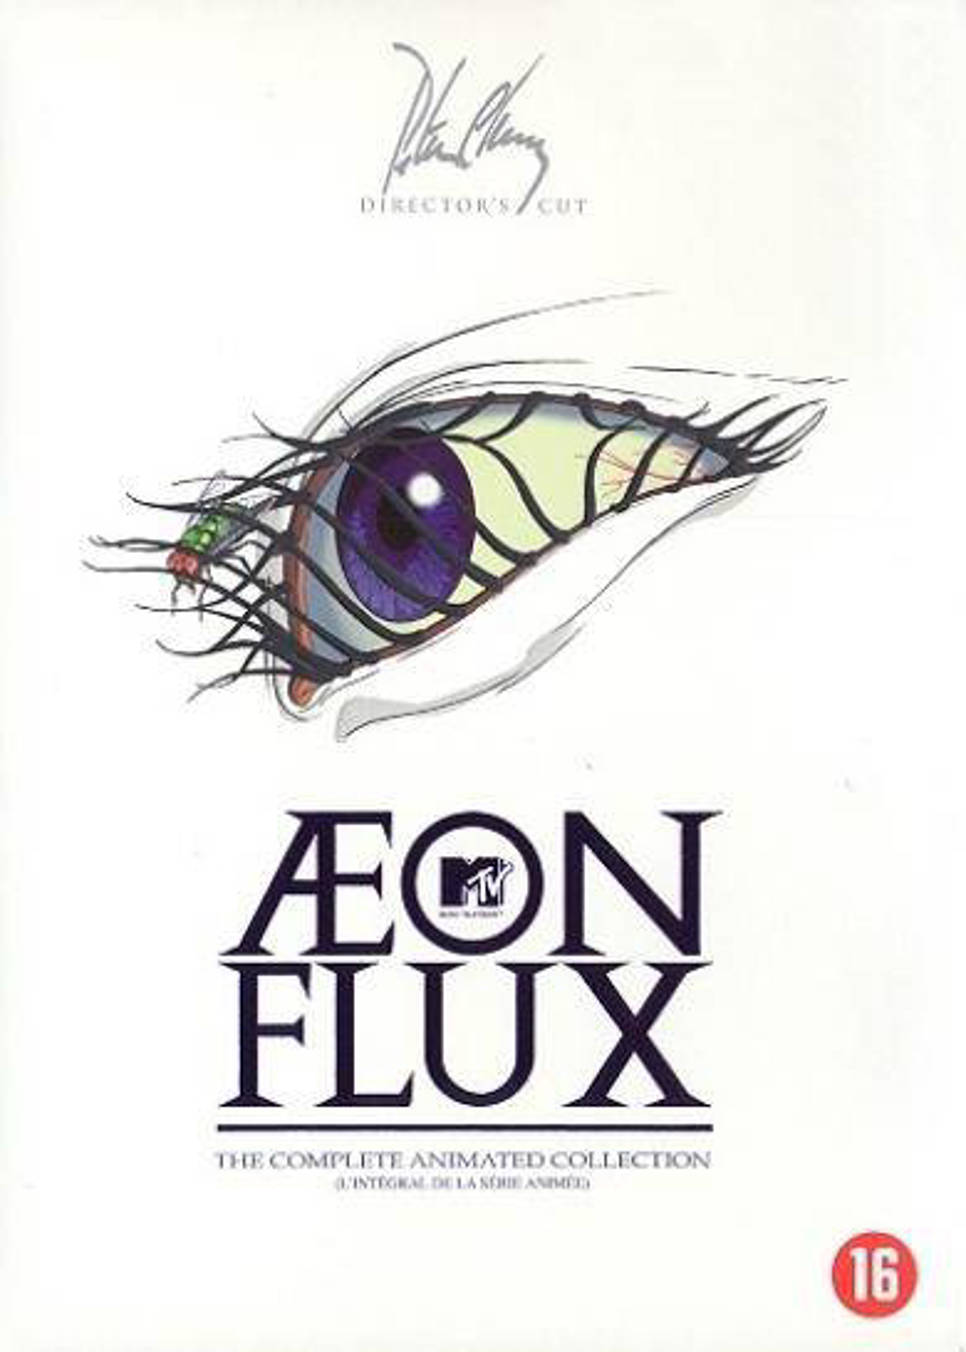 Aeon flux animated (DVD)